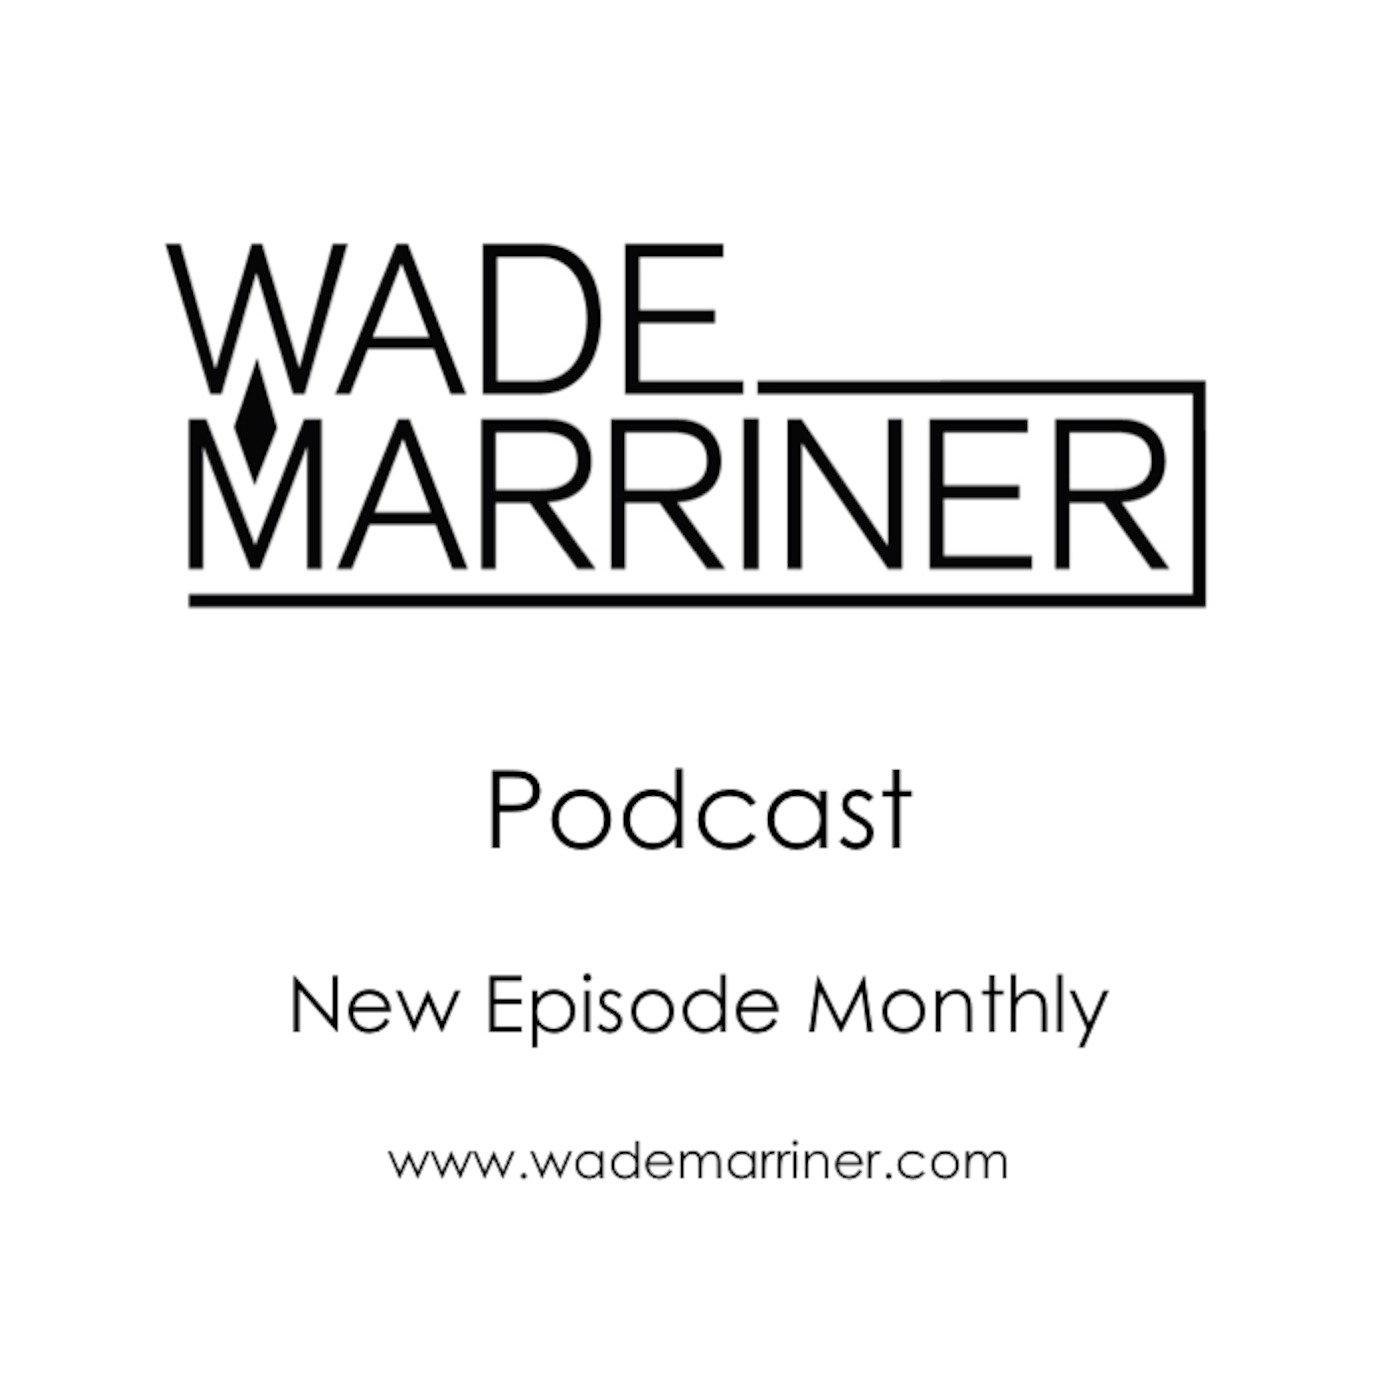 Wade Marriner's Podcast